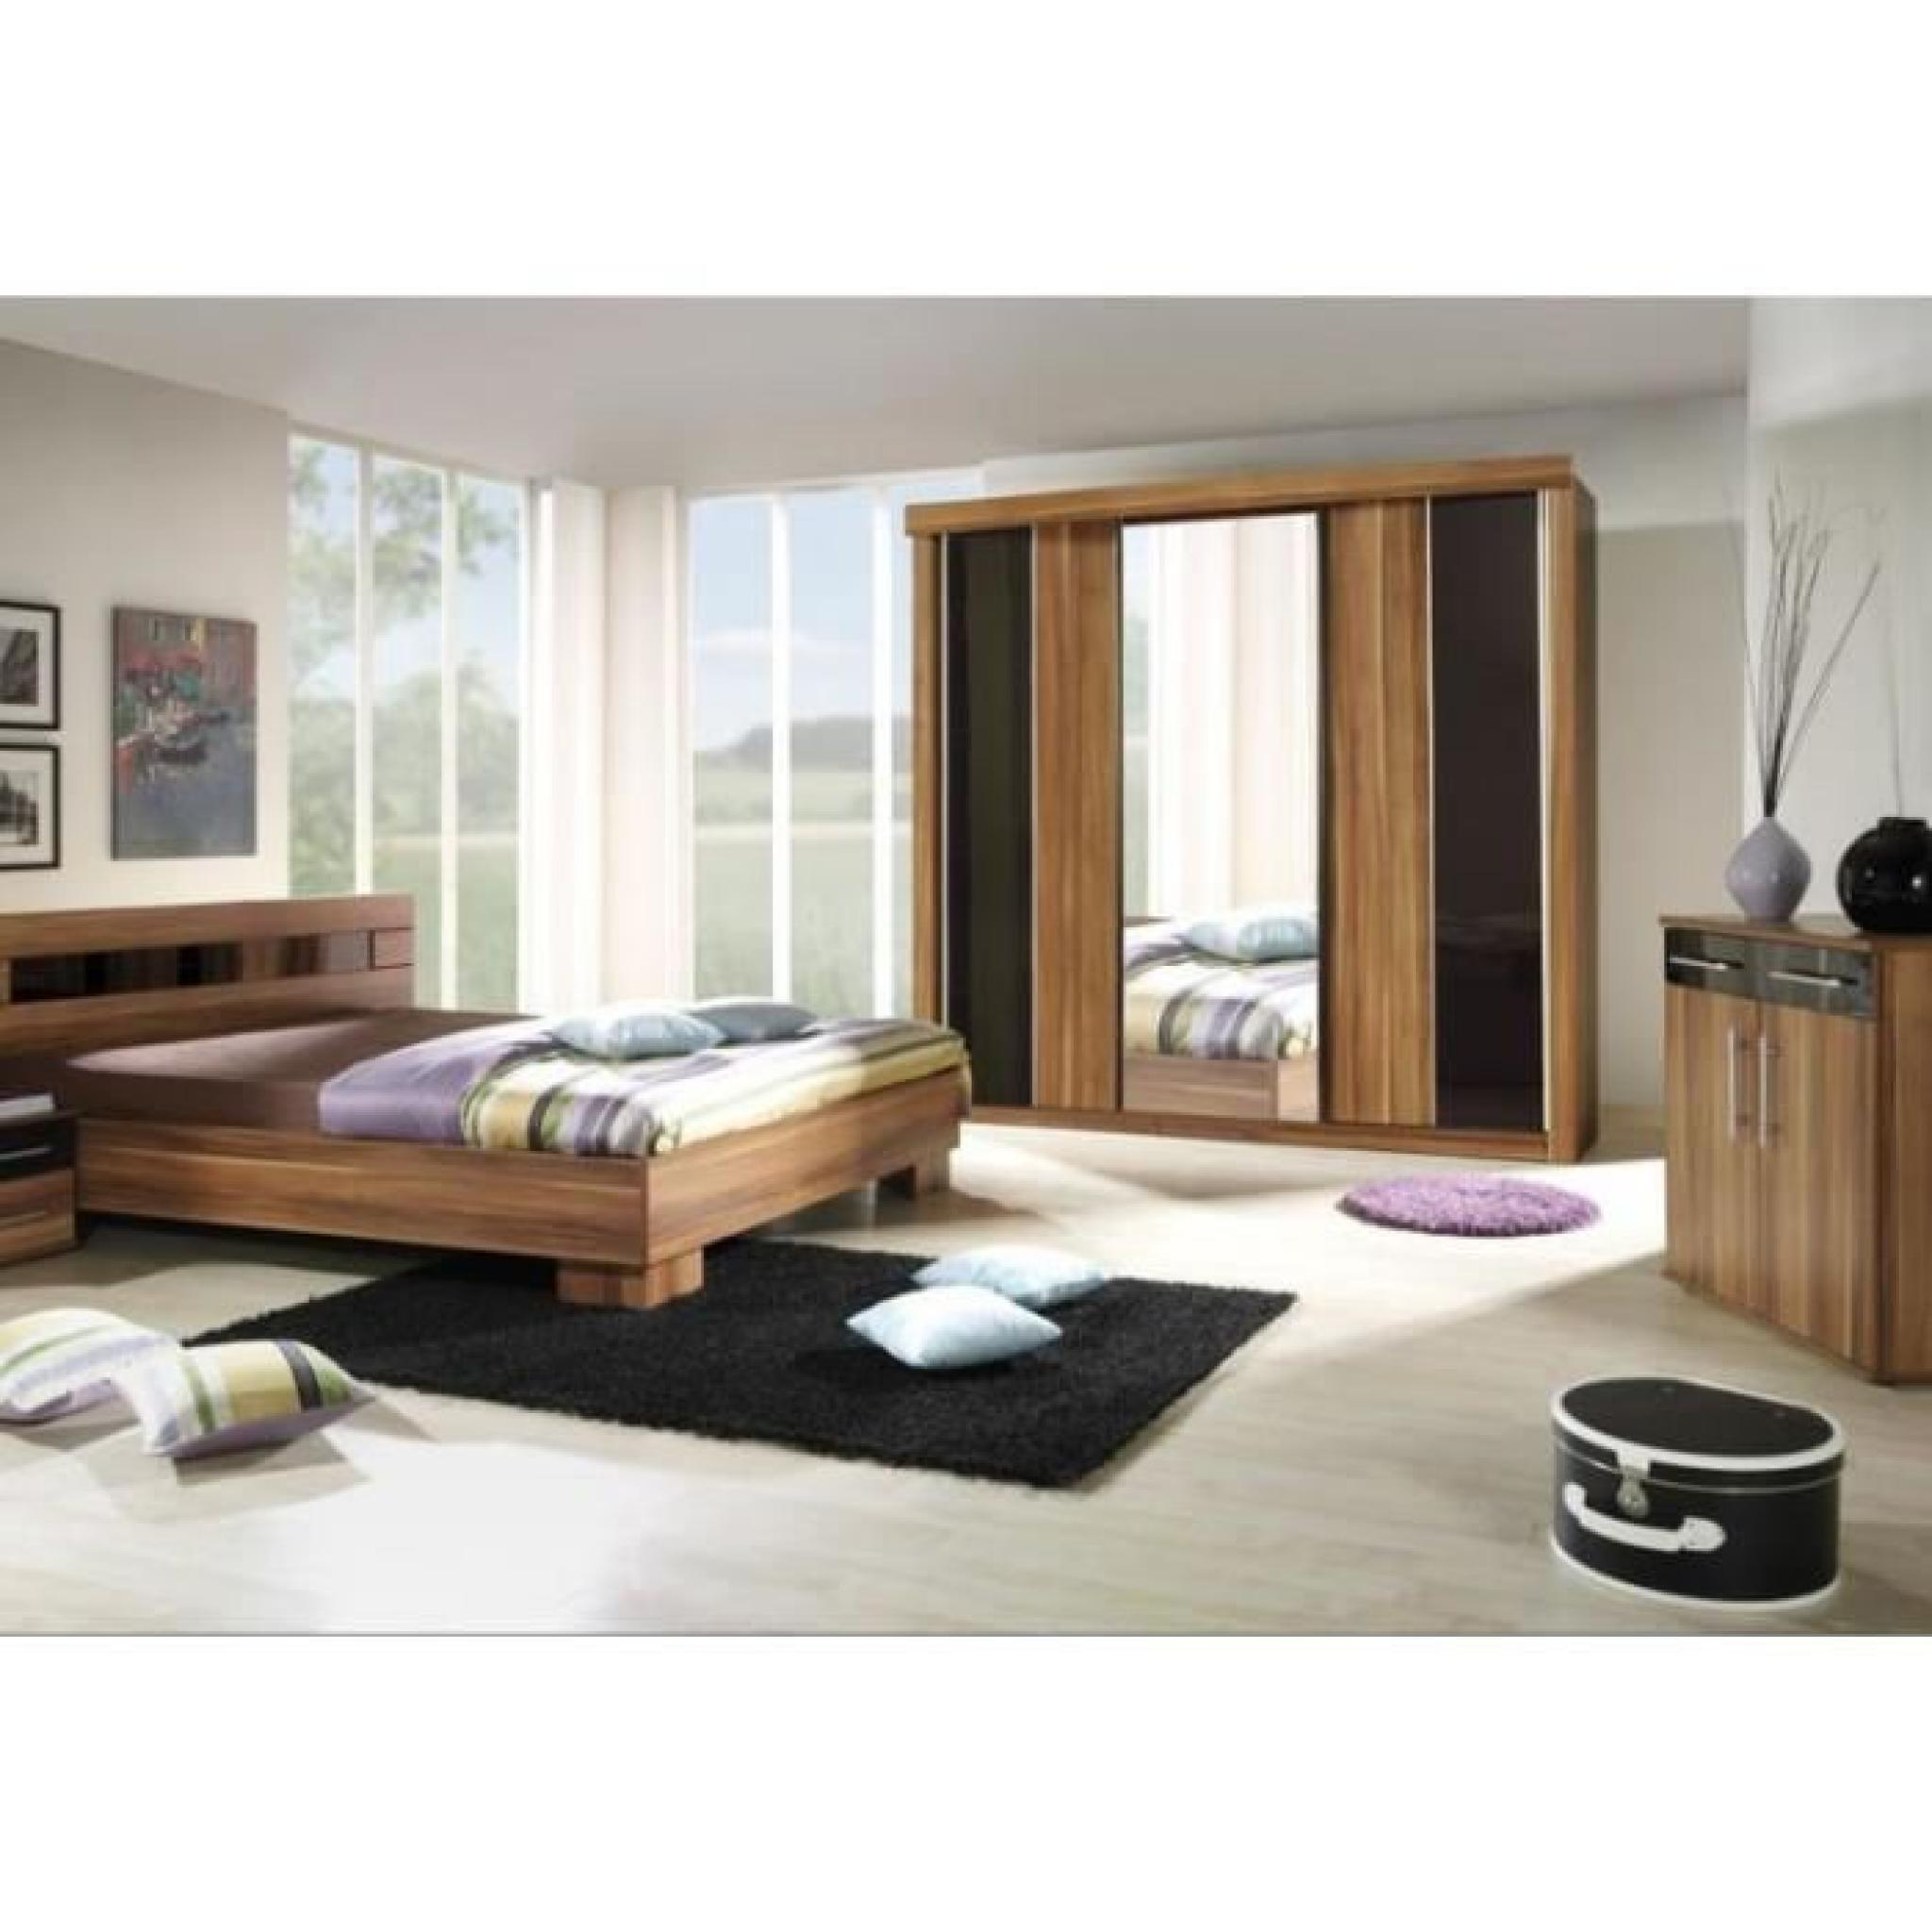 chambre coucher compl te dublin adulte design noyer lit. Black Bedroom Furniture Sets. Home Design Ideas